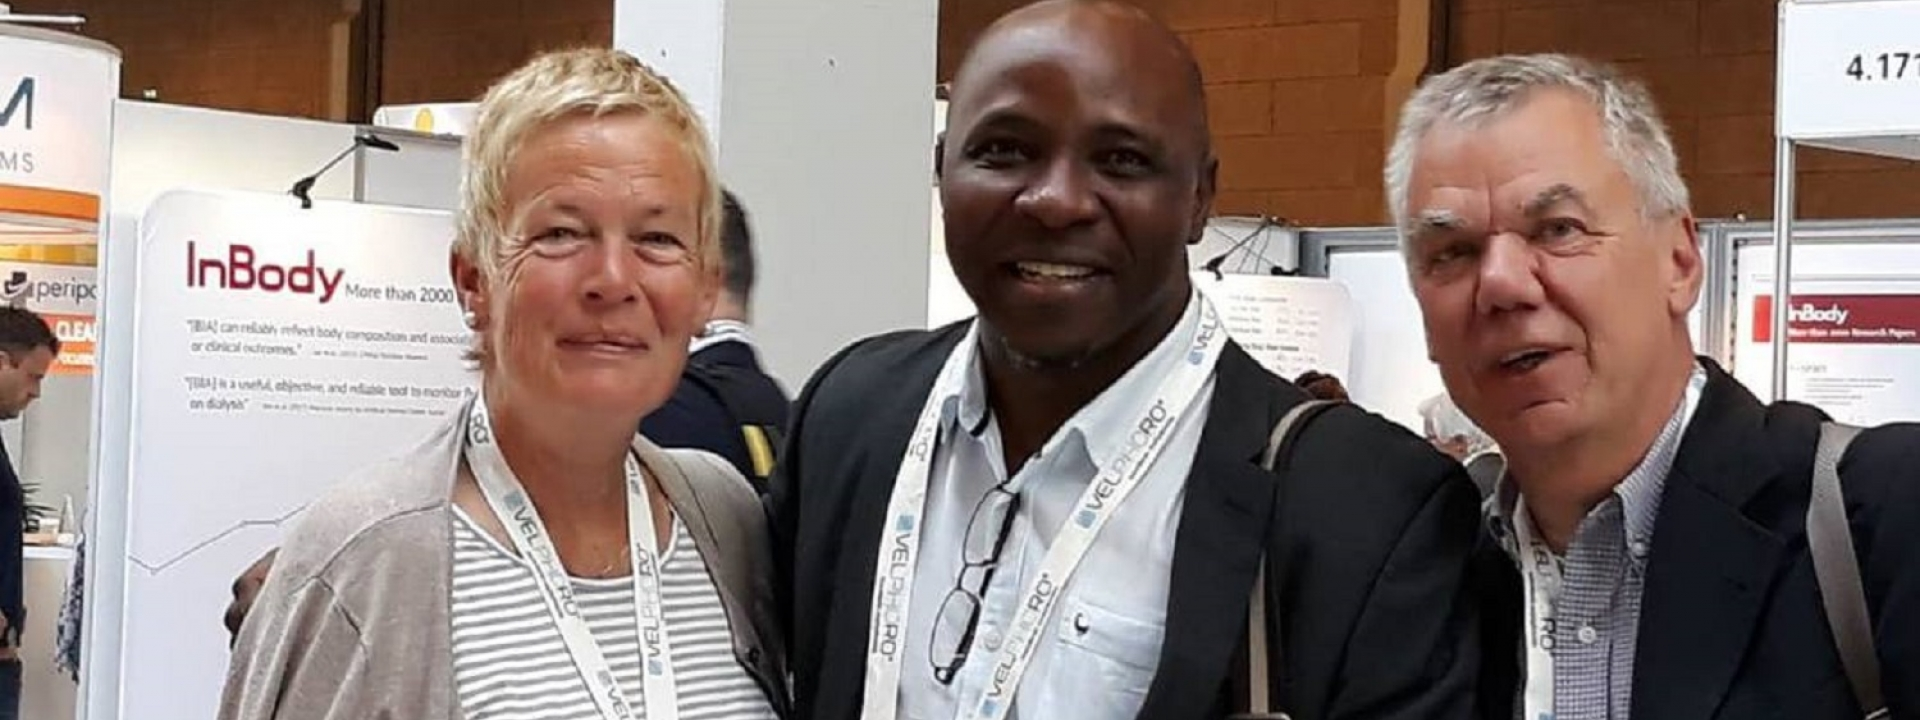 Ike Okpechi and Prof Peter Heering (UCT Renal unit visiting professor from Germany) at the 2018 ERA-EDTA Congress in Copenhagen, Denmark.